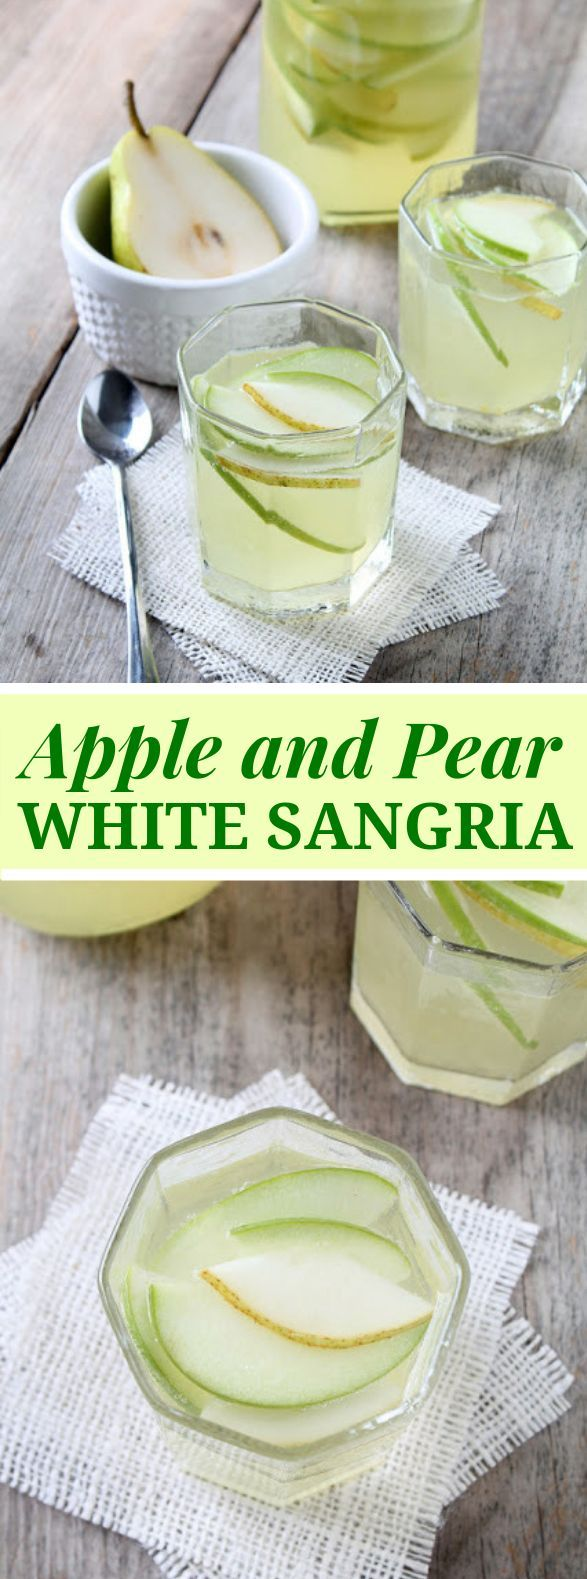 APPLE AND PEAR WHITE SANGRIA #drinks #cocktails